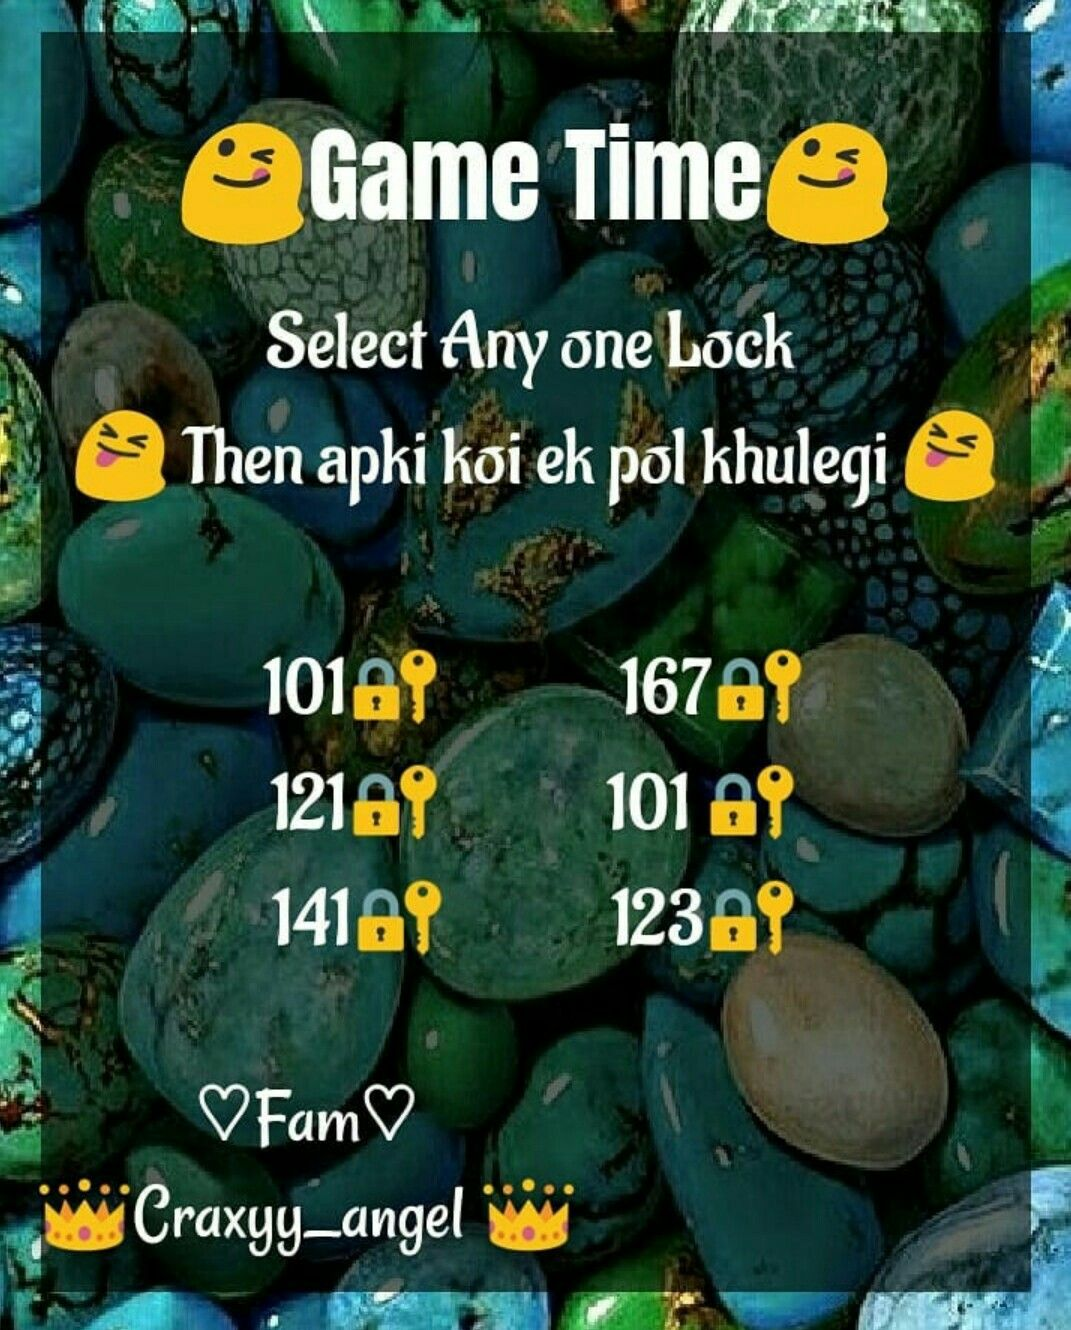 Cherry Pandey Dare Games For Friends Truth Or Dare Games Love Quiz Games